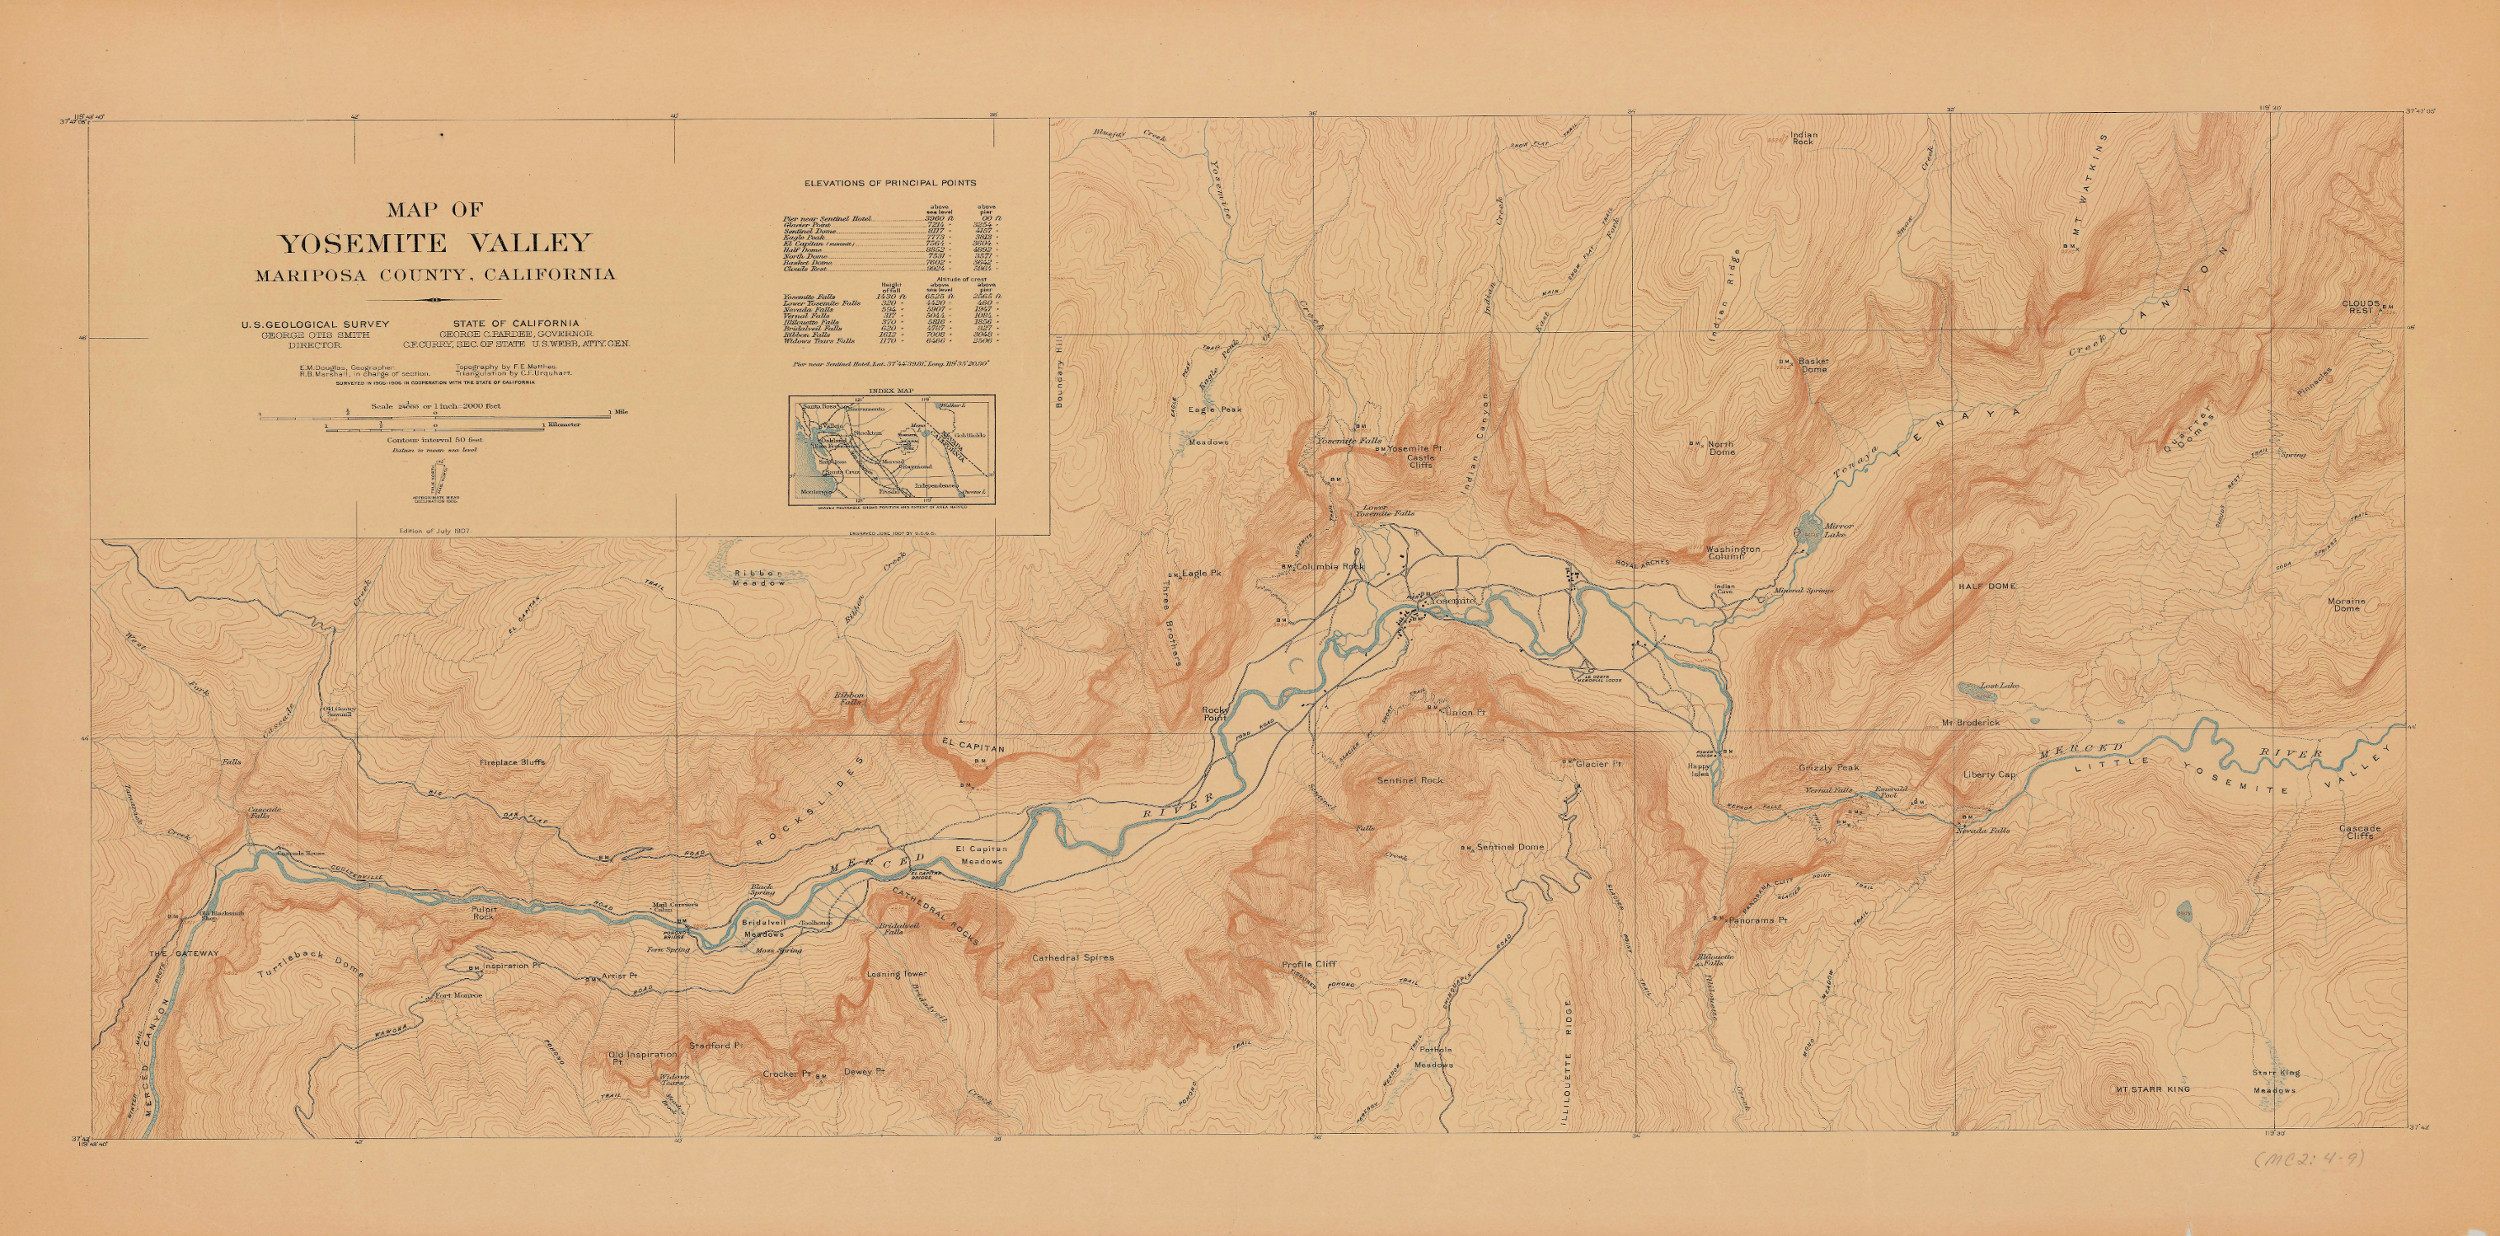 Topographical Map of Yosemite Valley | California Secretary of State